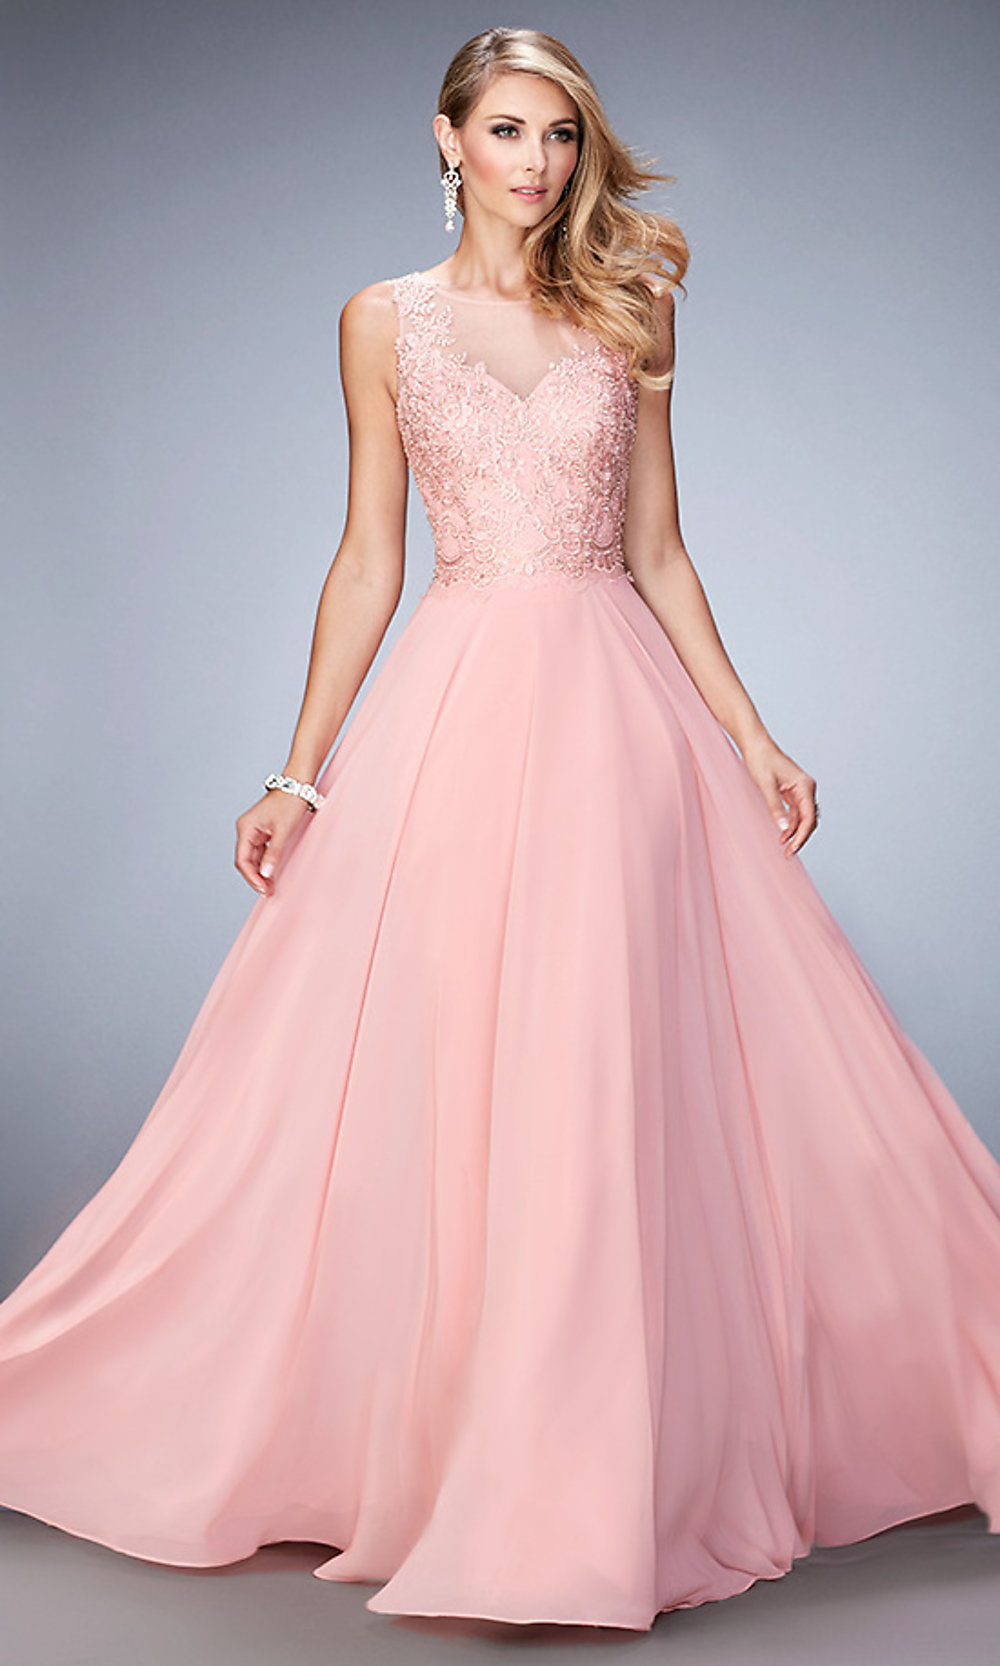 Celebrity Prom Dresses, Sexy Evening Gowns - PromGirl: LF-22824